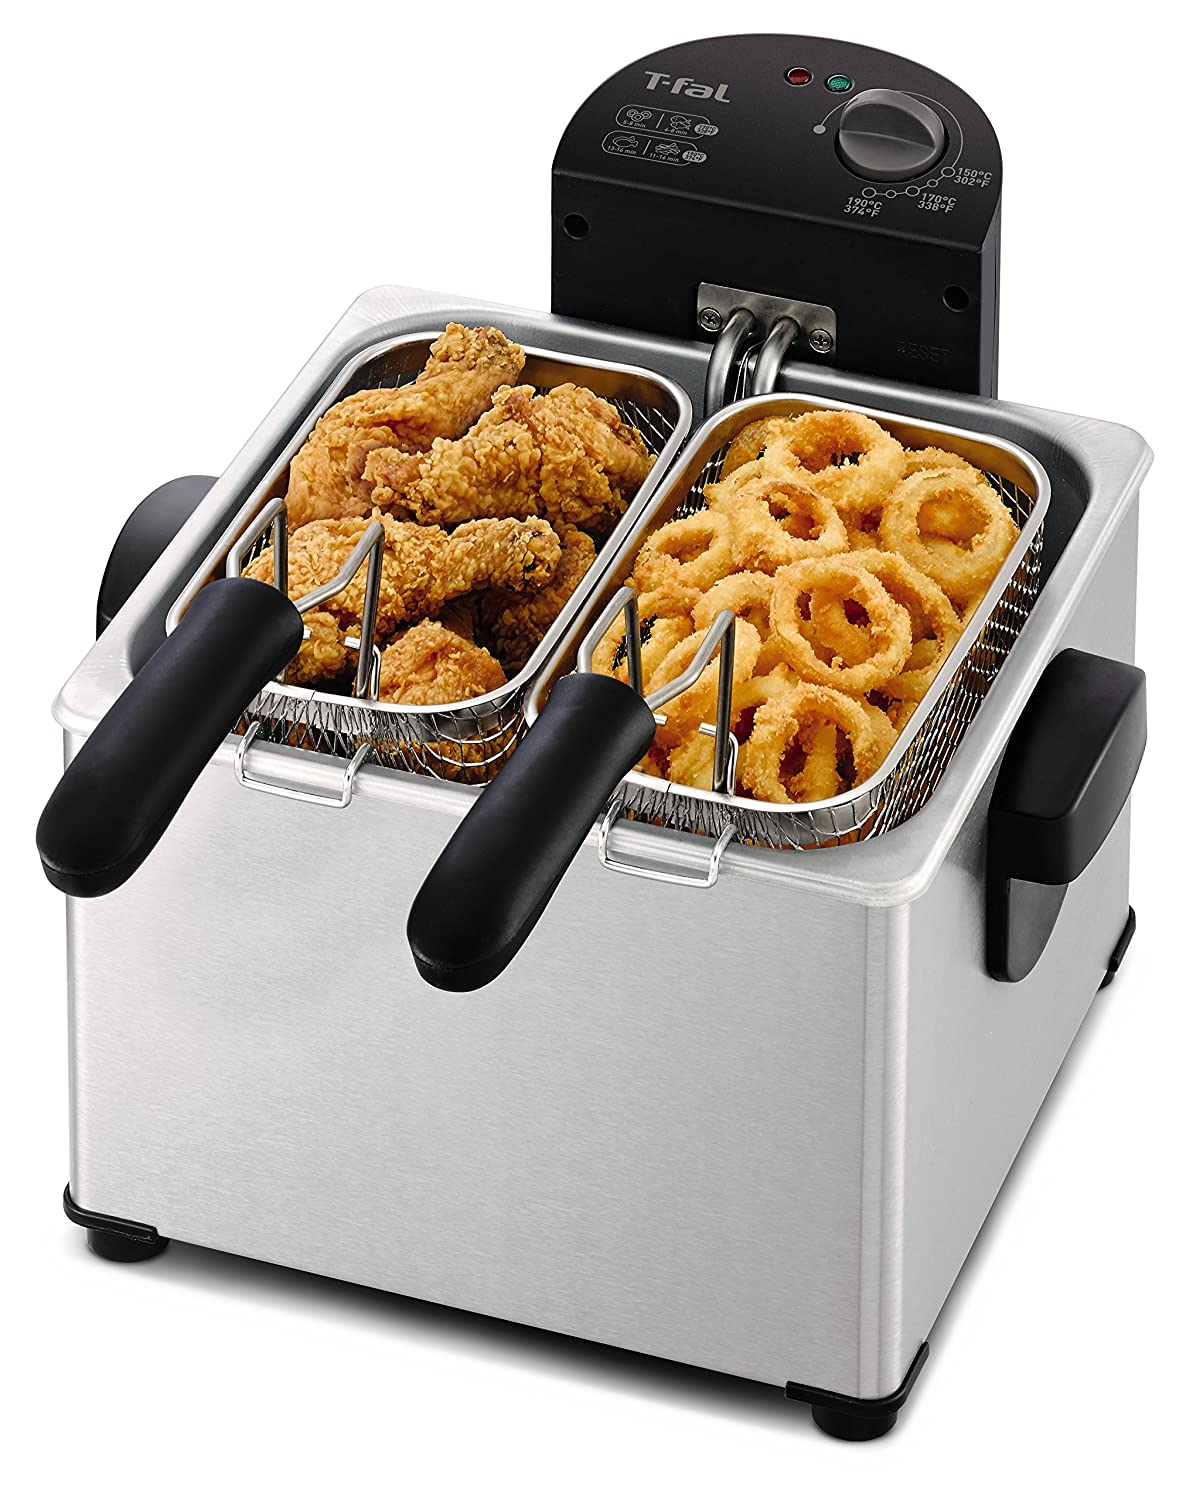 T-fal FR3900 Deep Fryer, Electric Deep Fryer, Stainless Steel Triple Basket Fryer, 4 Liter, Silver